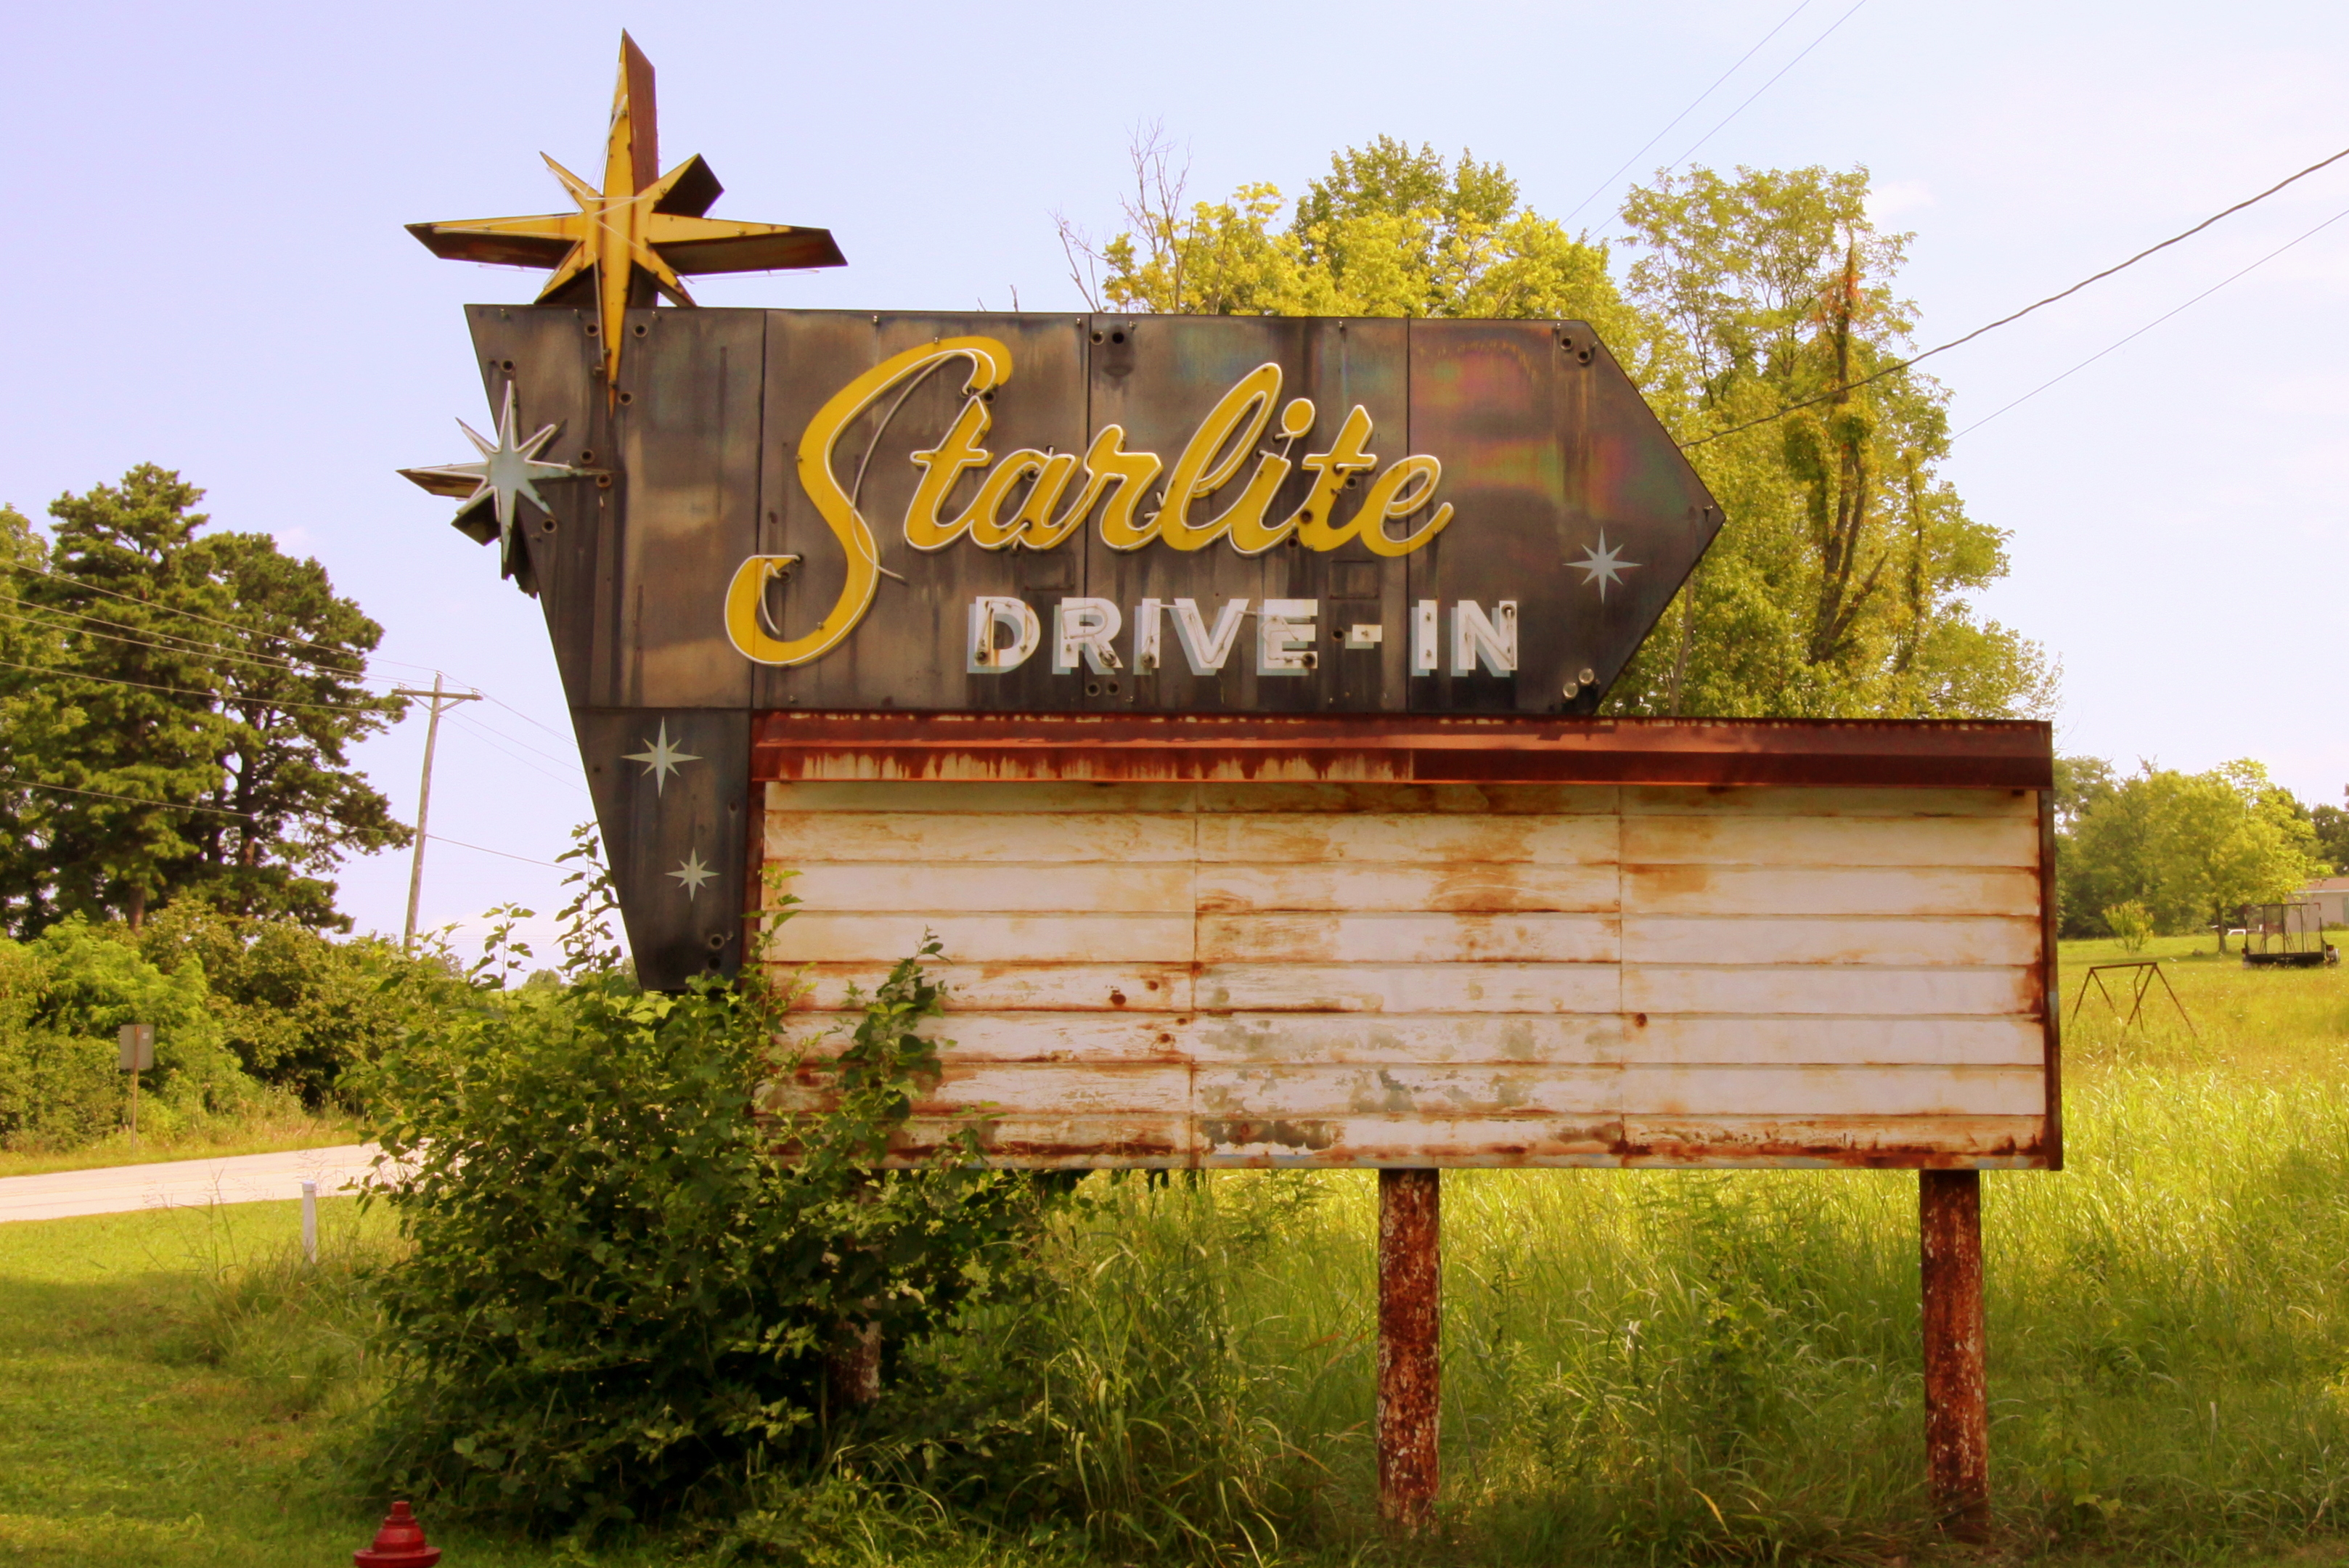 Starlite Drive-In - Tell City, Indiana U.S.A. - July 24, 2017